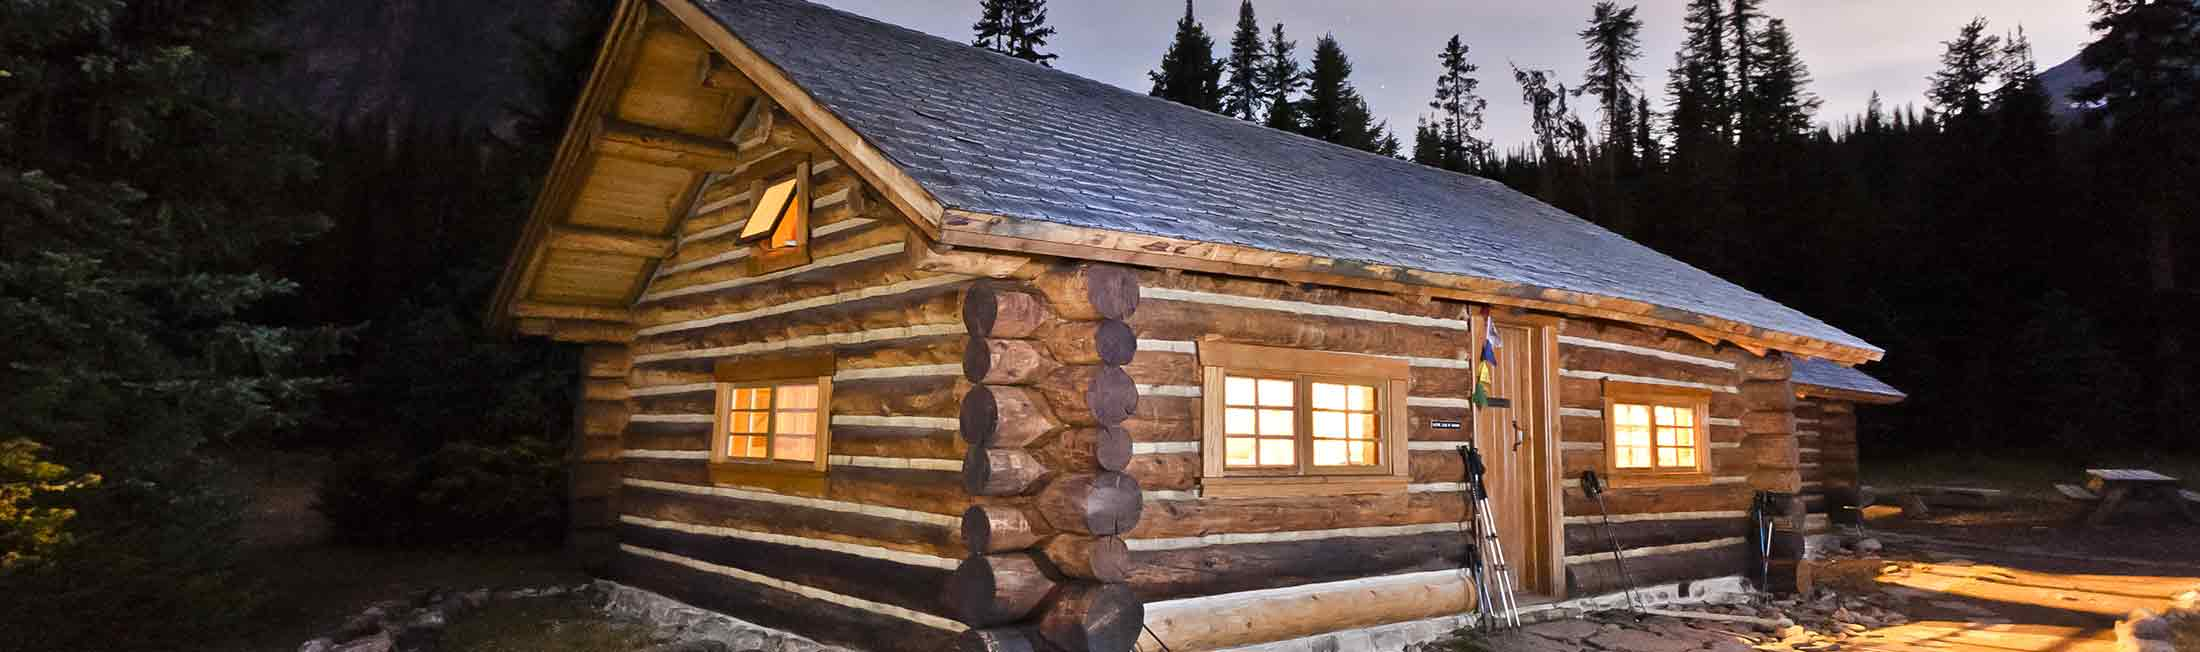 for management cabin cabins in s rent madison curley curleys montana listings